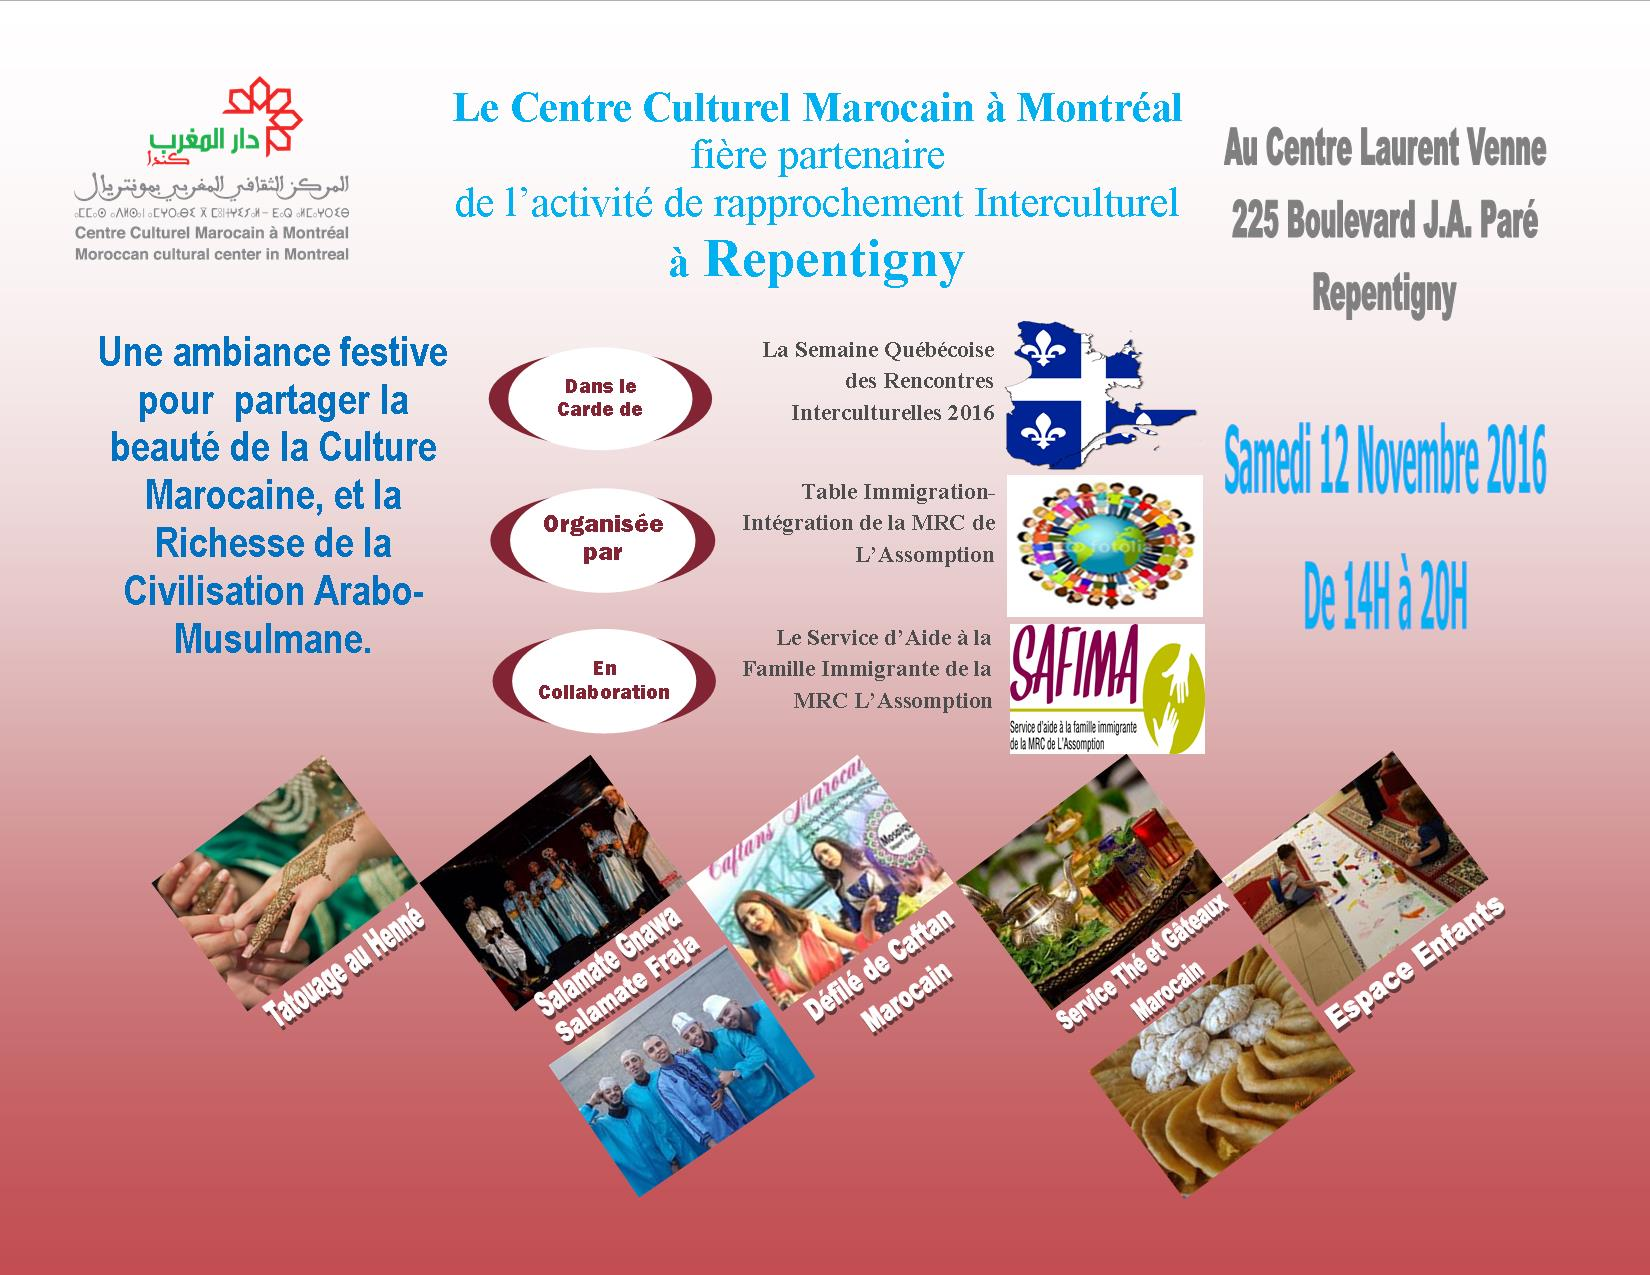 Rencontres interculturelles 2016 fontaine